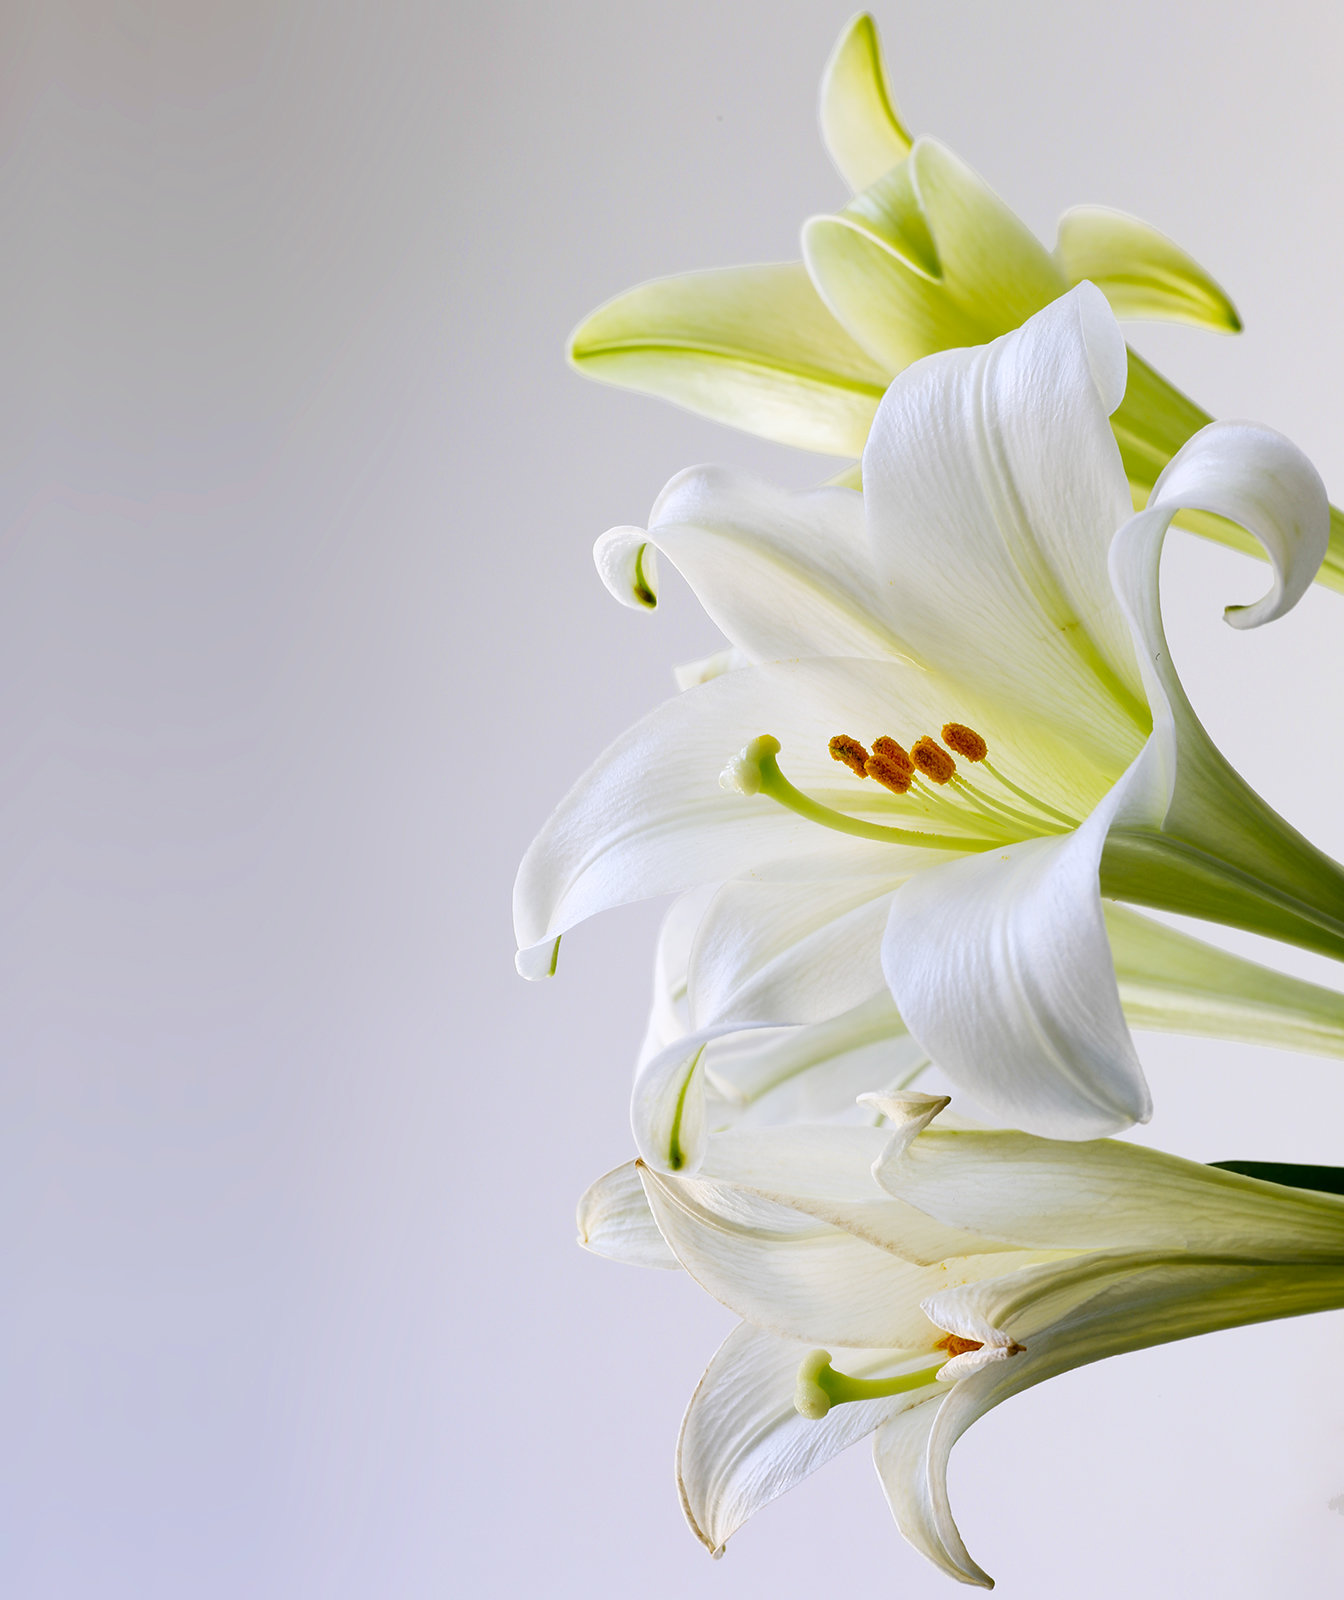 How to Care for an Easter Lily